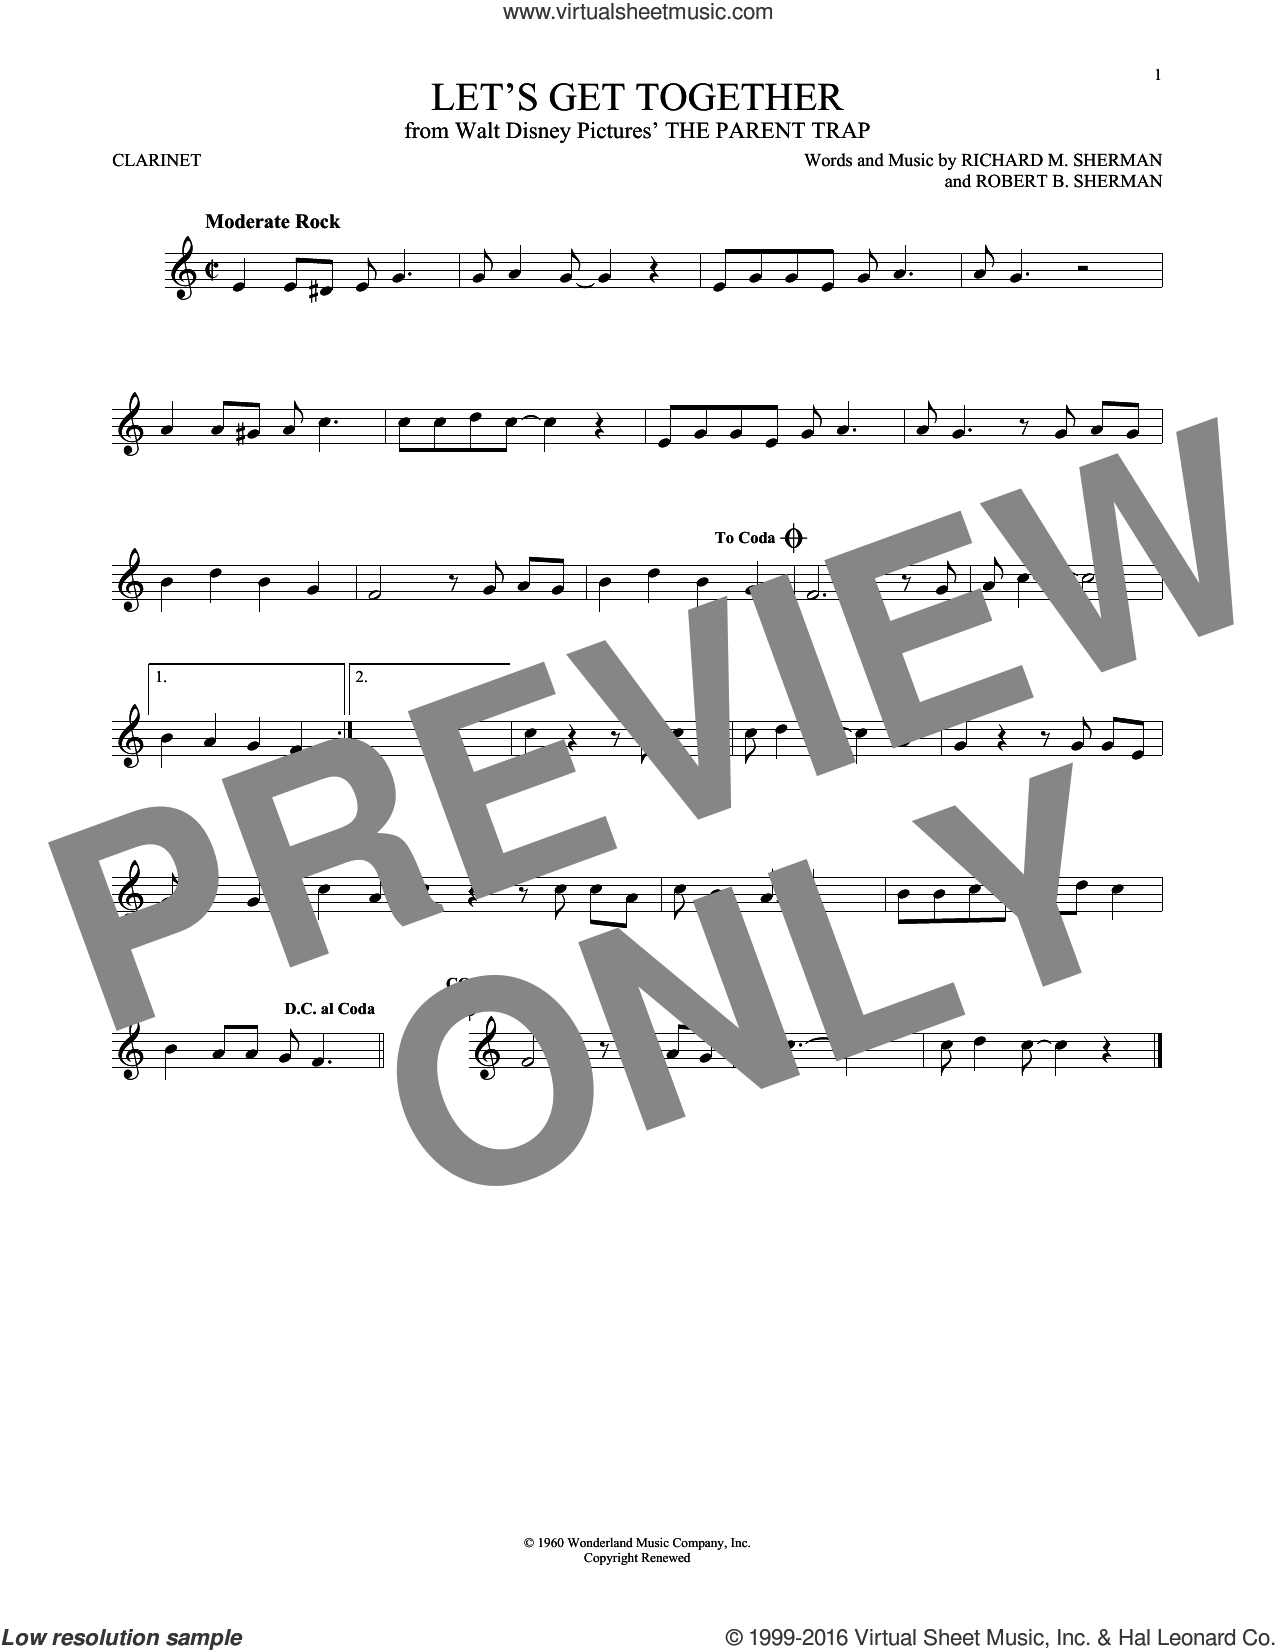 Let's Get Together sheet music for clarinet solo by Hayley Mills, Richard M. Sherman and Robert B. Sherman, intermediate skill level